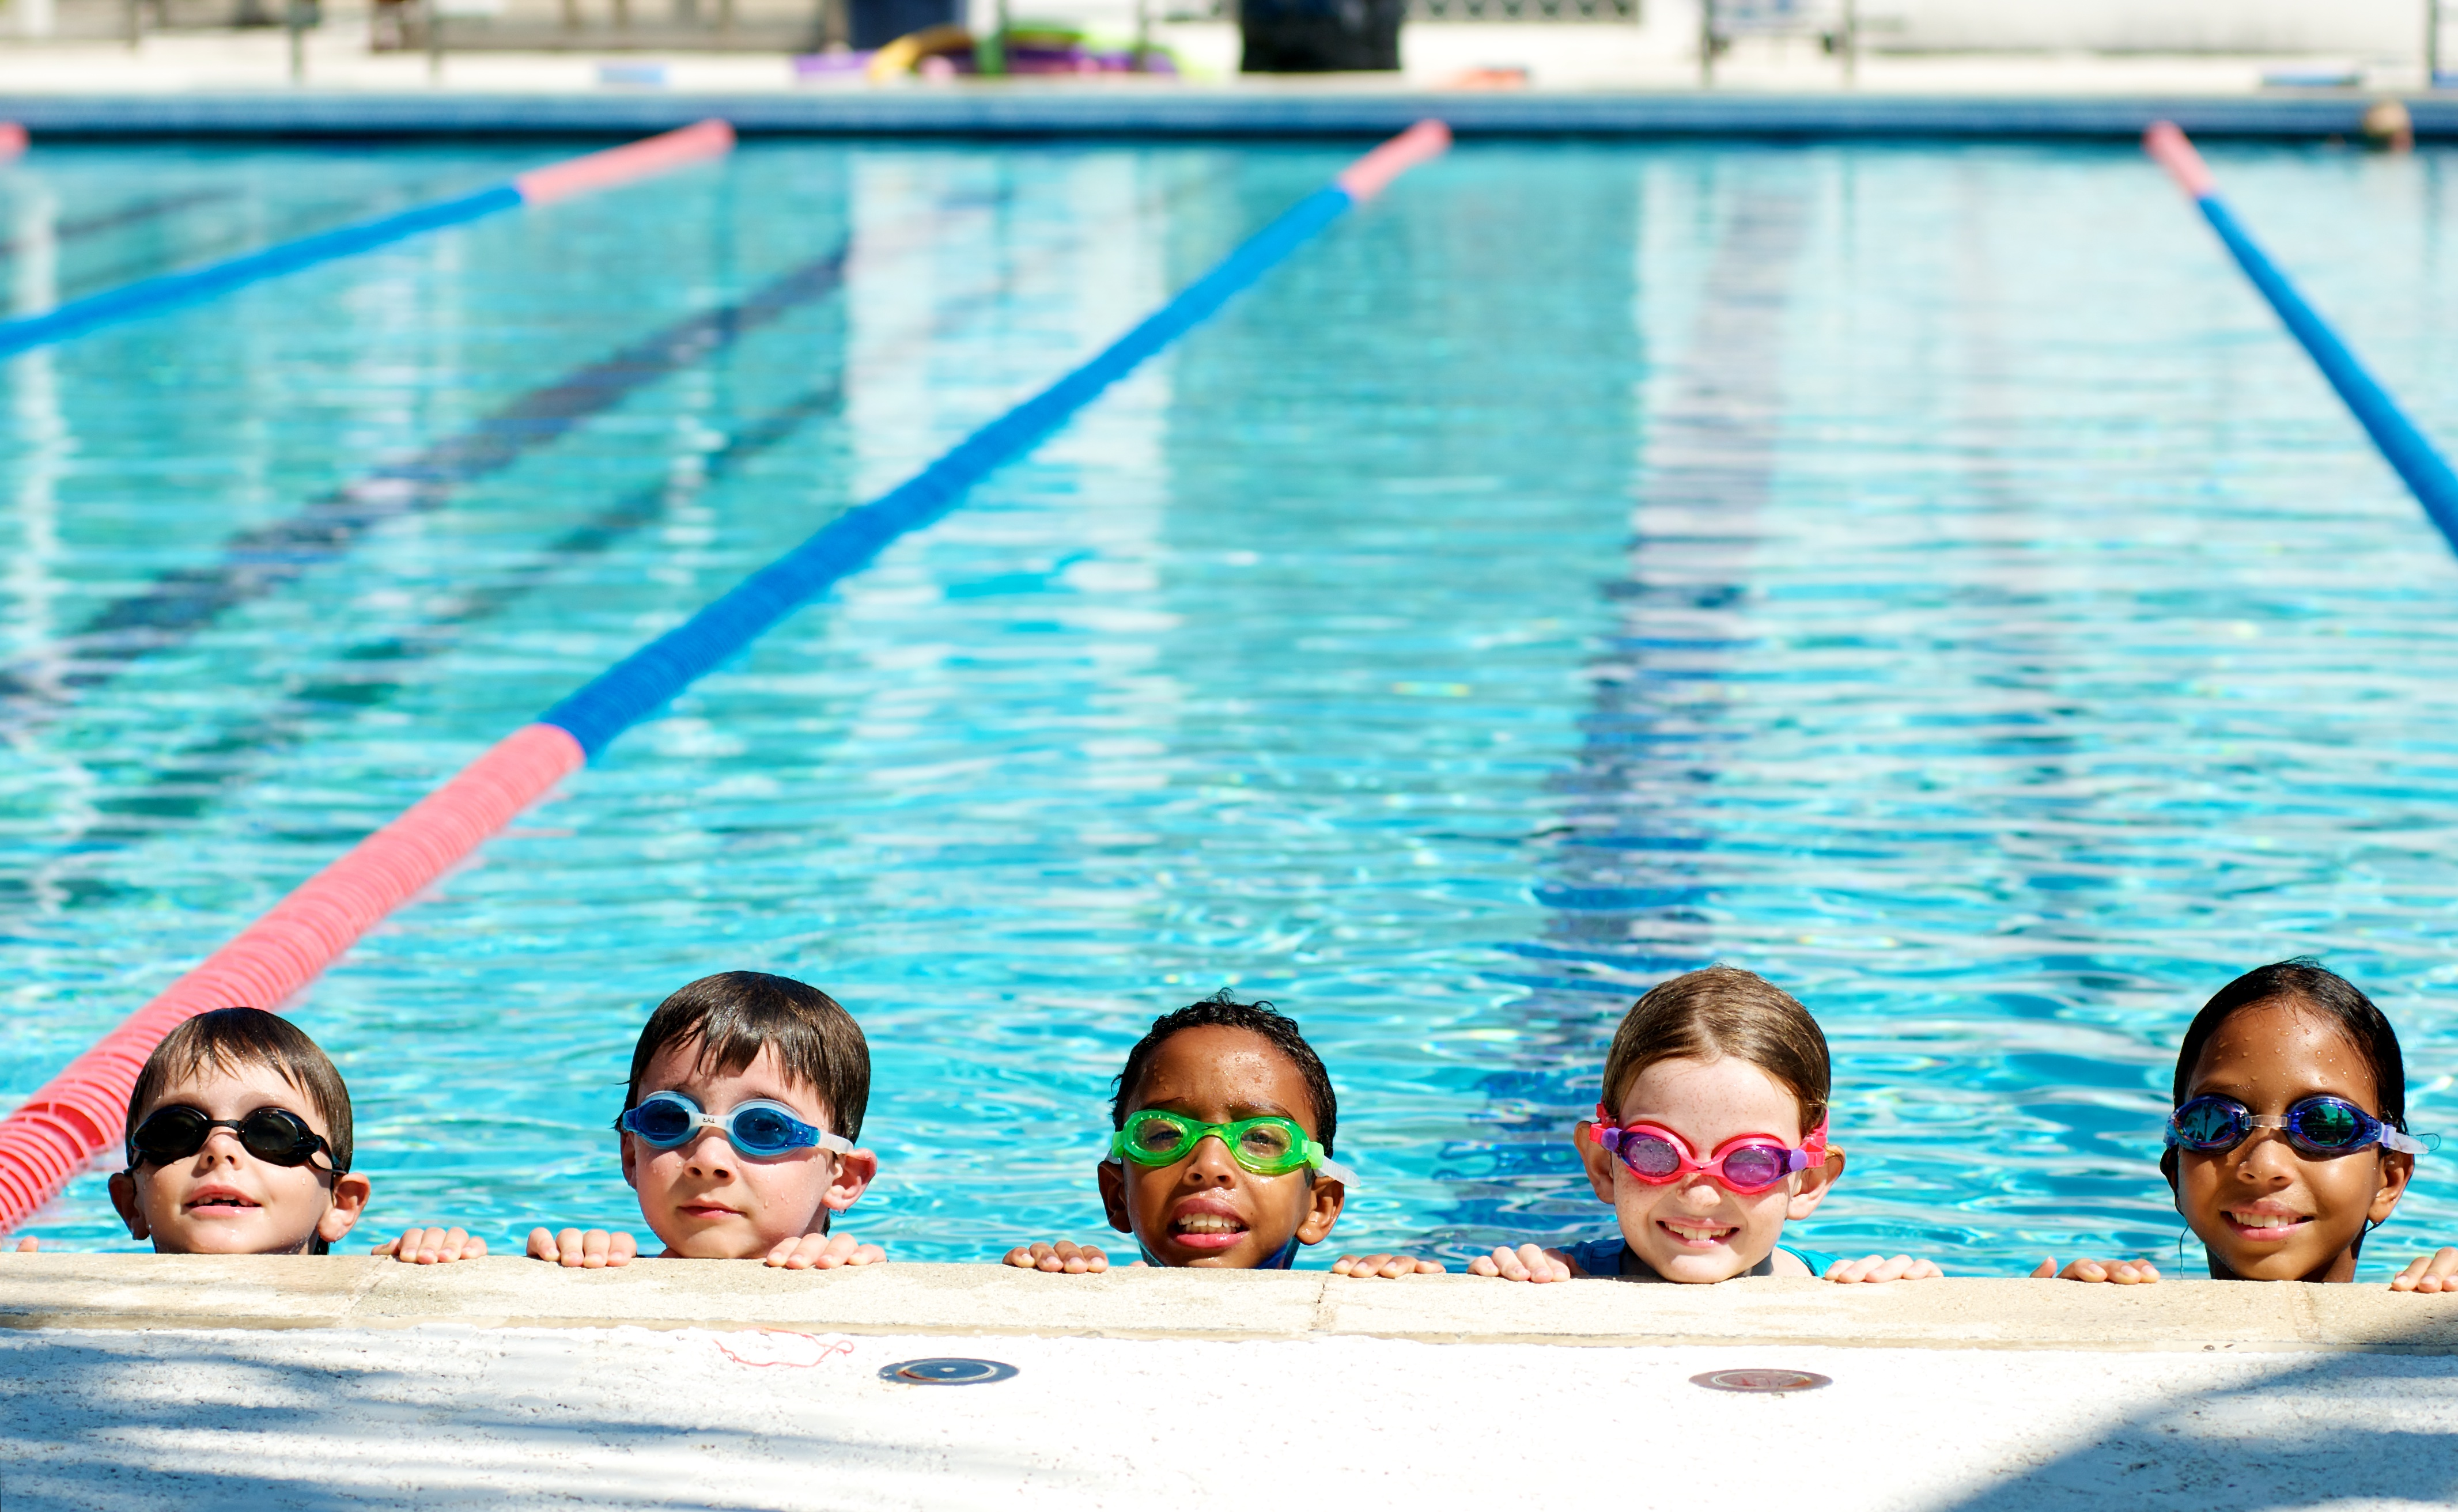 Registration now open for spring session of free swim - Opening a swimming pool after winter ...